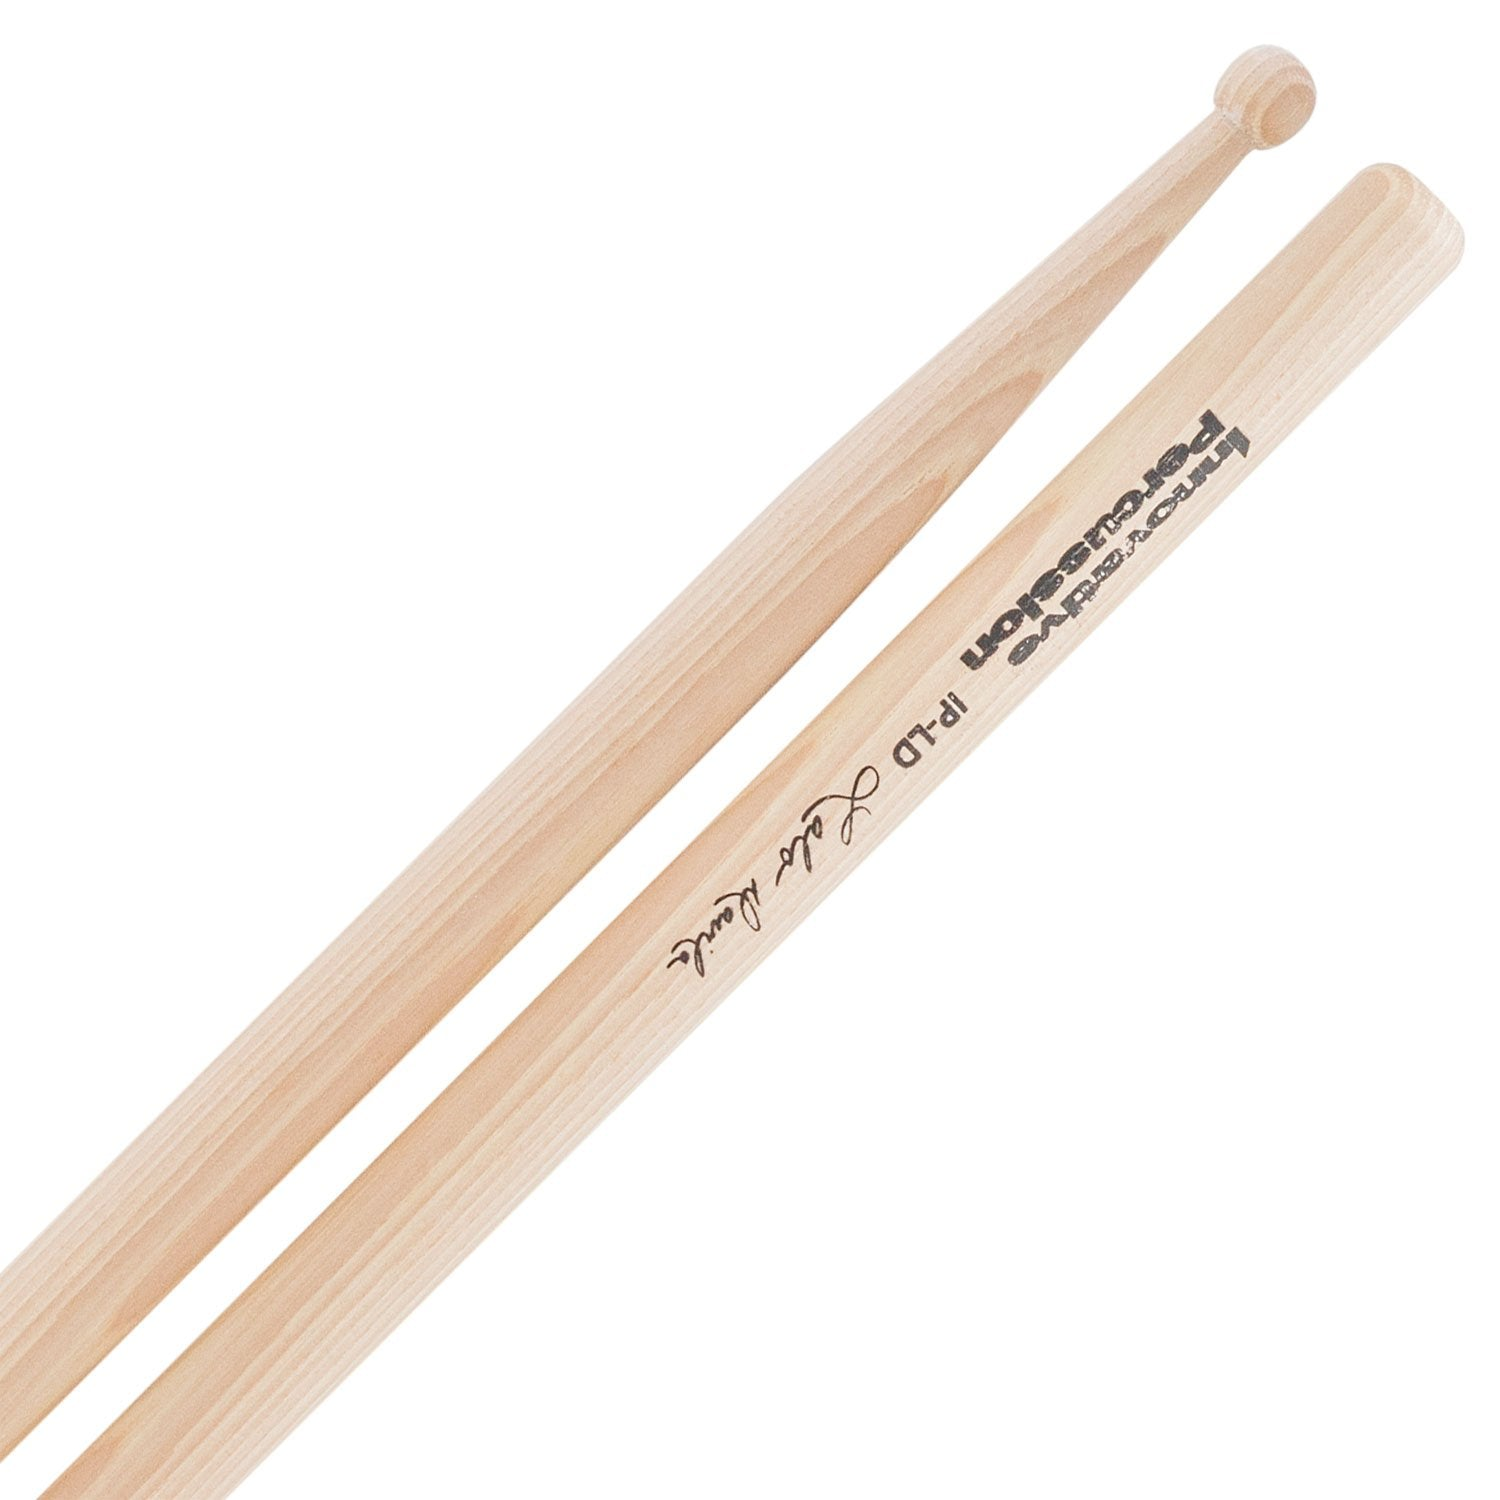 Innovative Percussion - IP-LD Lalo Davila Concert Snare Drum Drumsticks